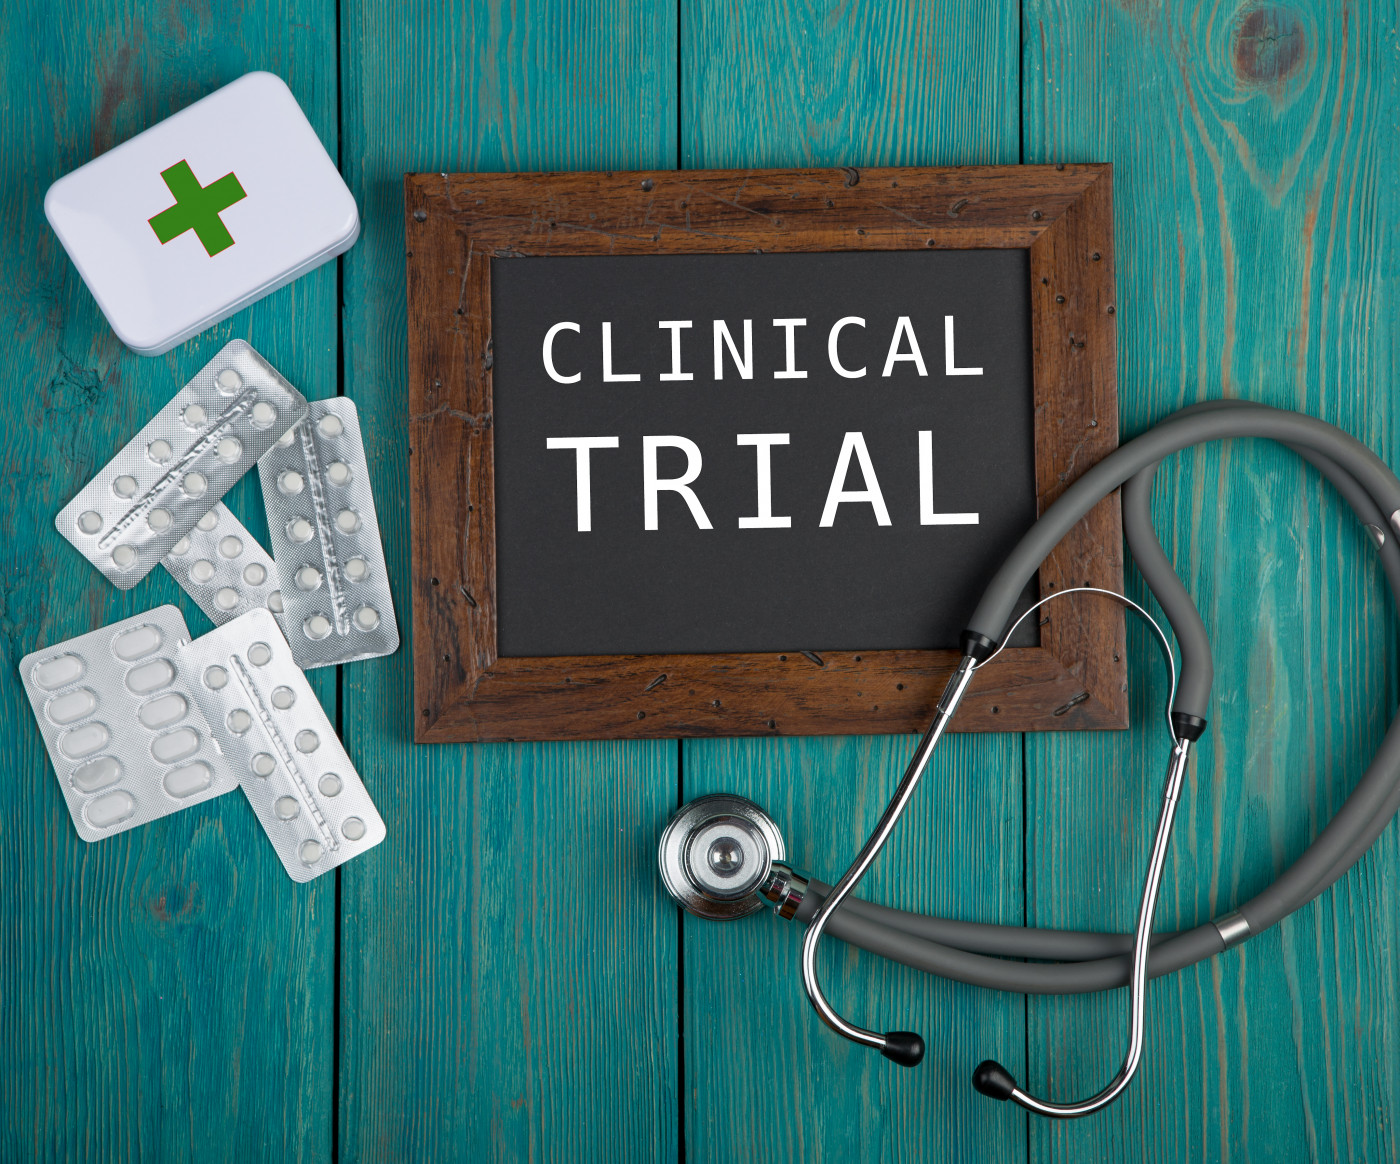 ACTH inhibitor entering trial